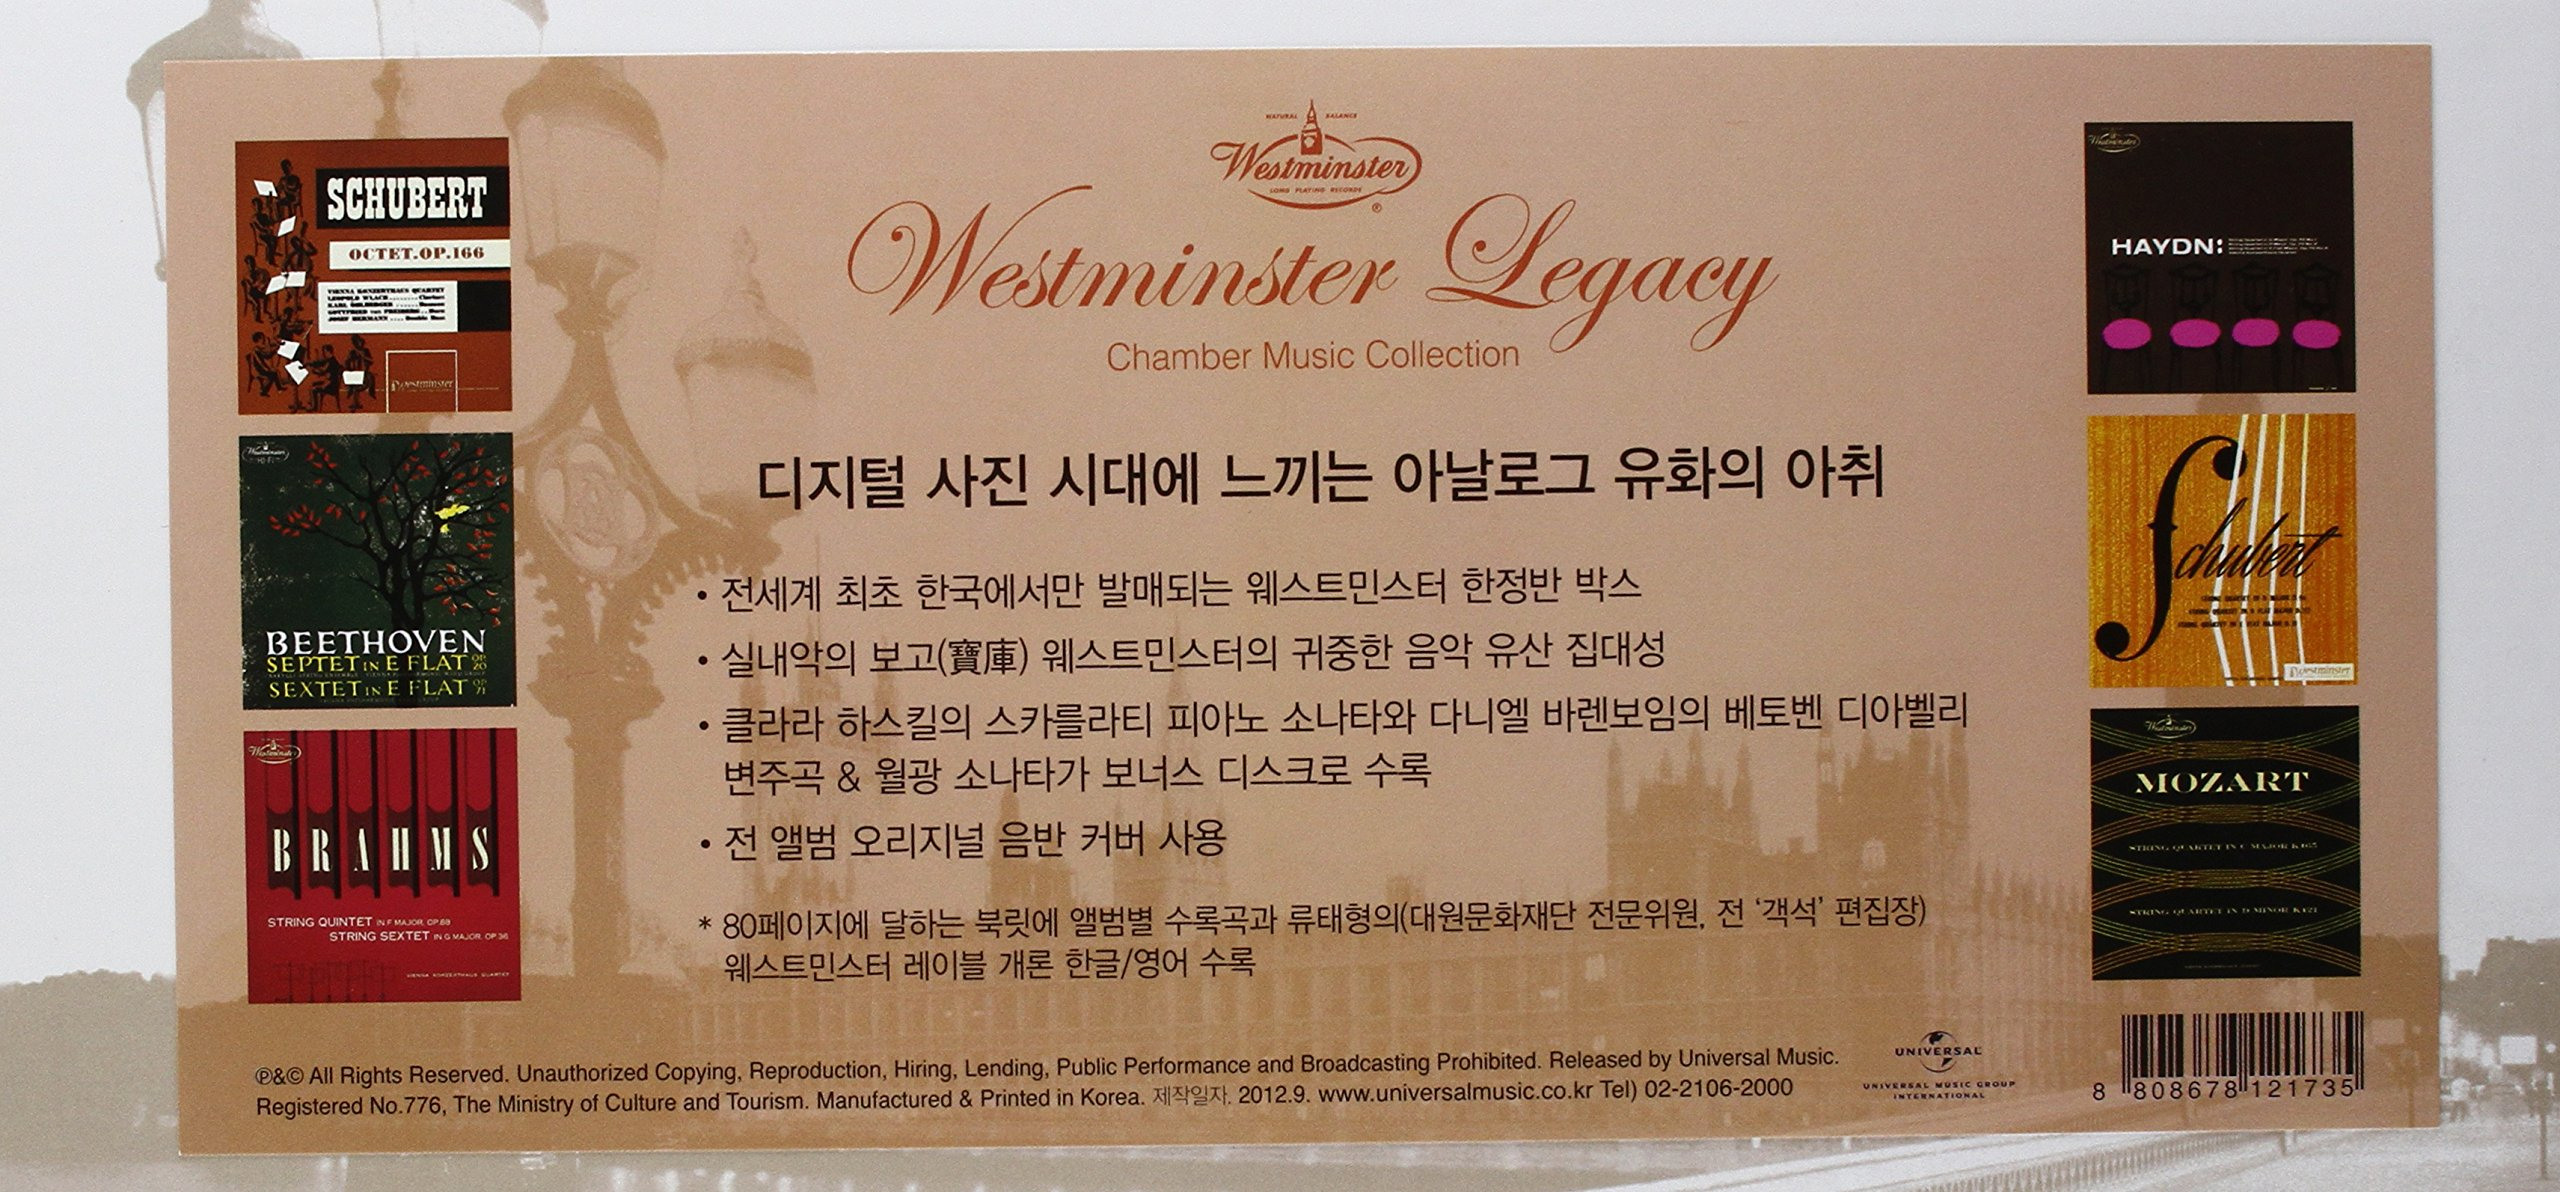 Westminster Legacy by Imports